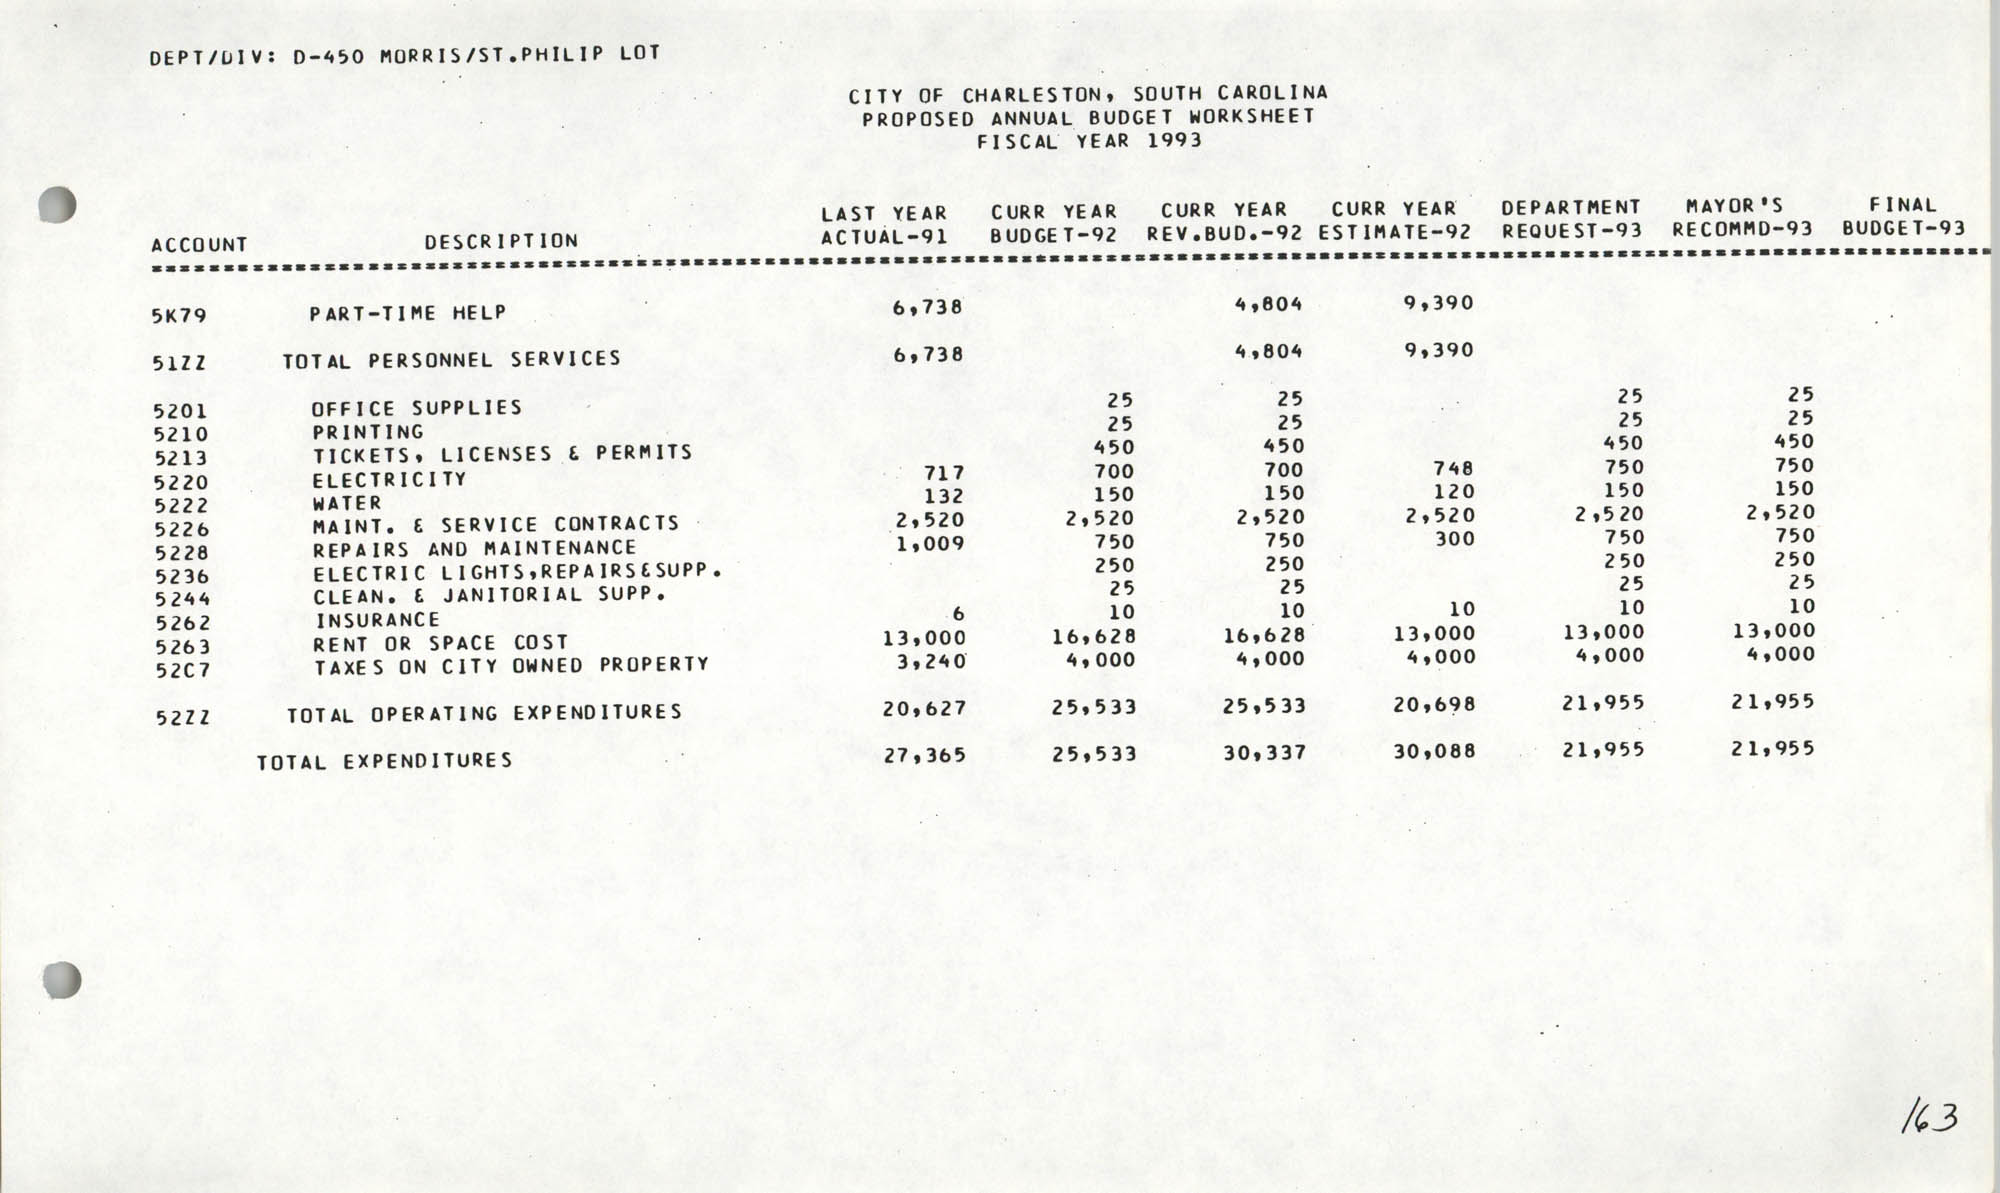 The City Council of Charleston, South Carolina, 1993 Budget, Page 163